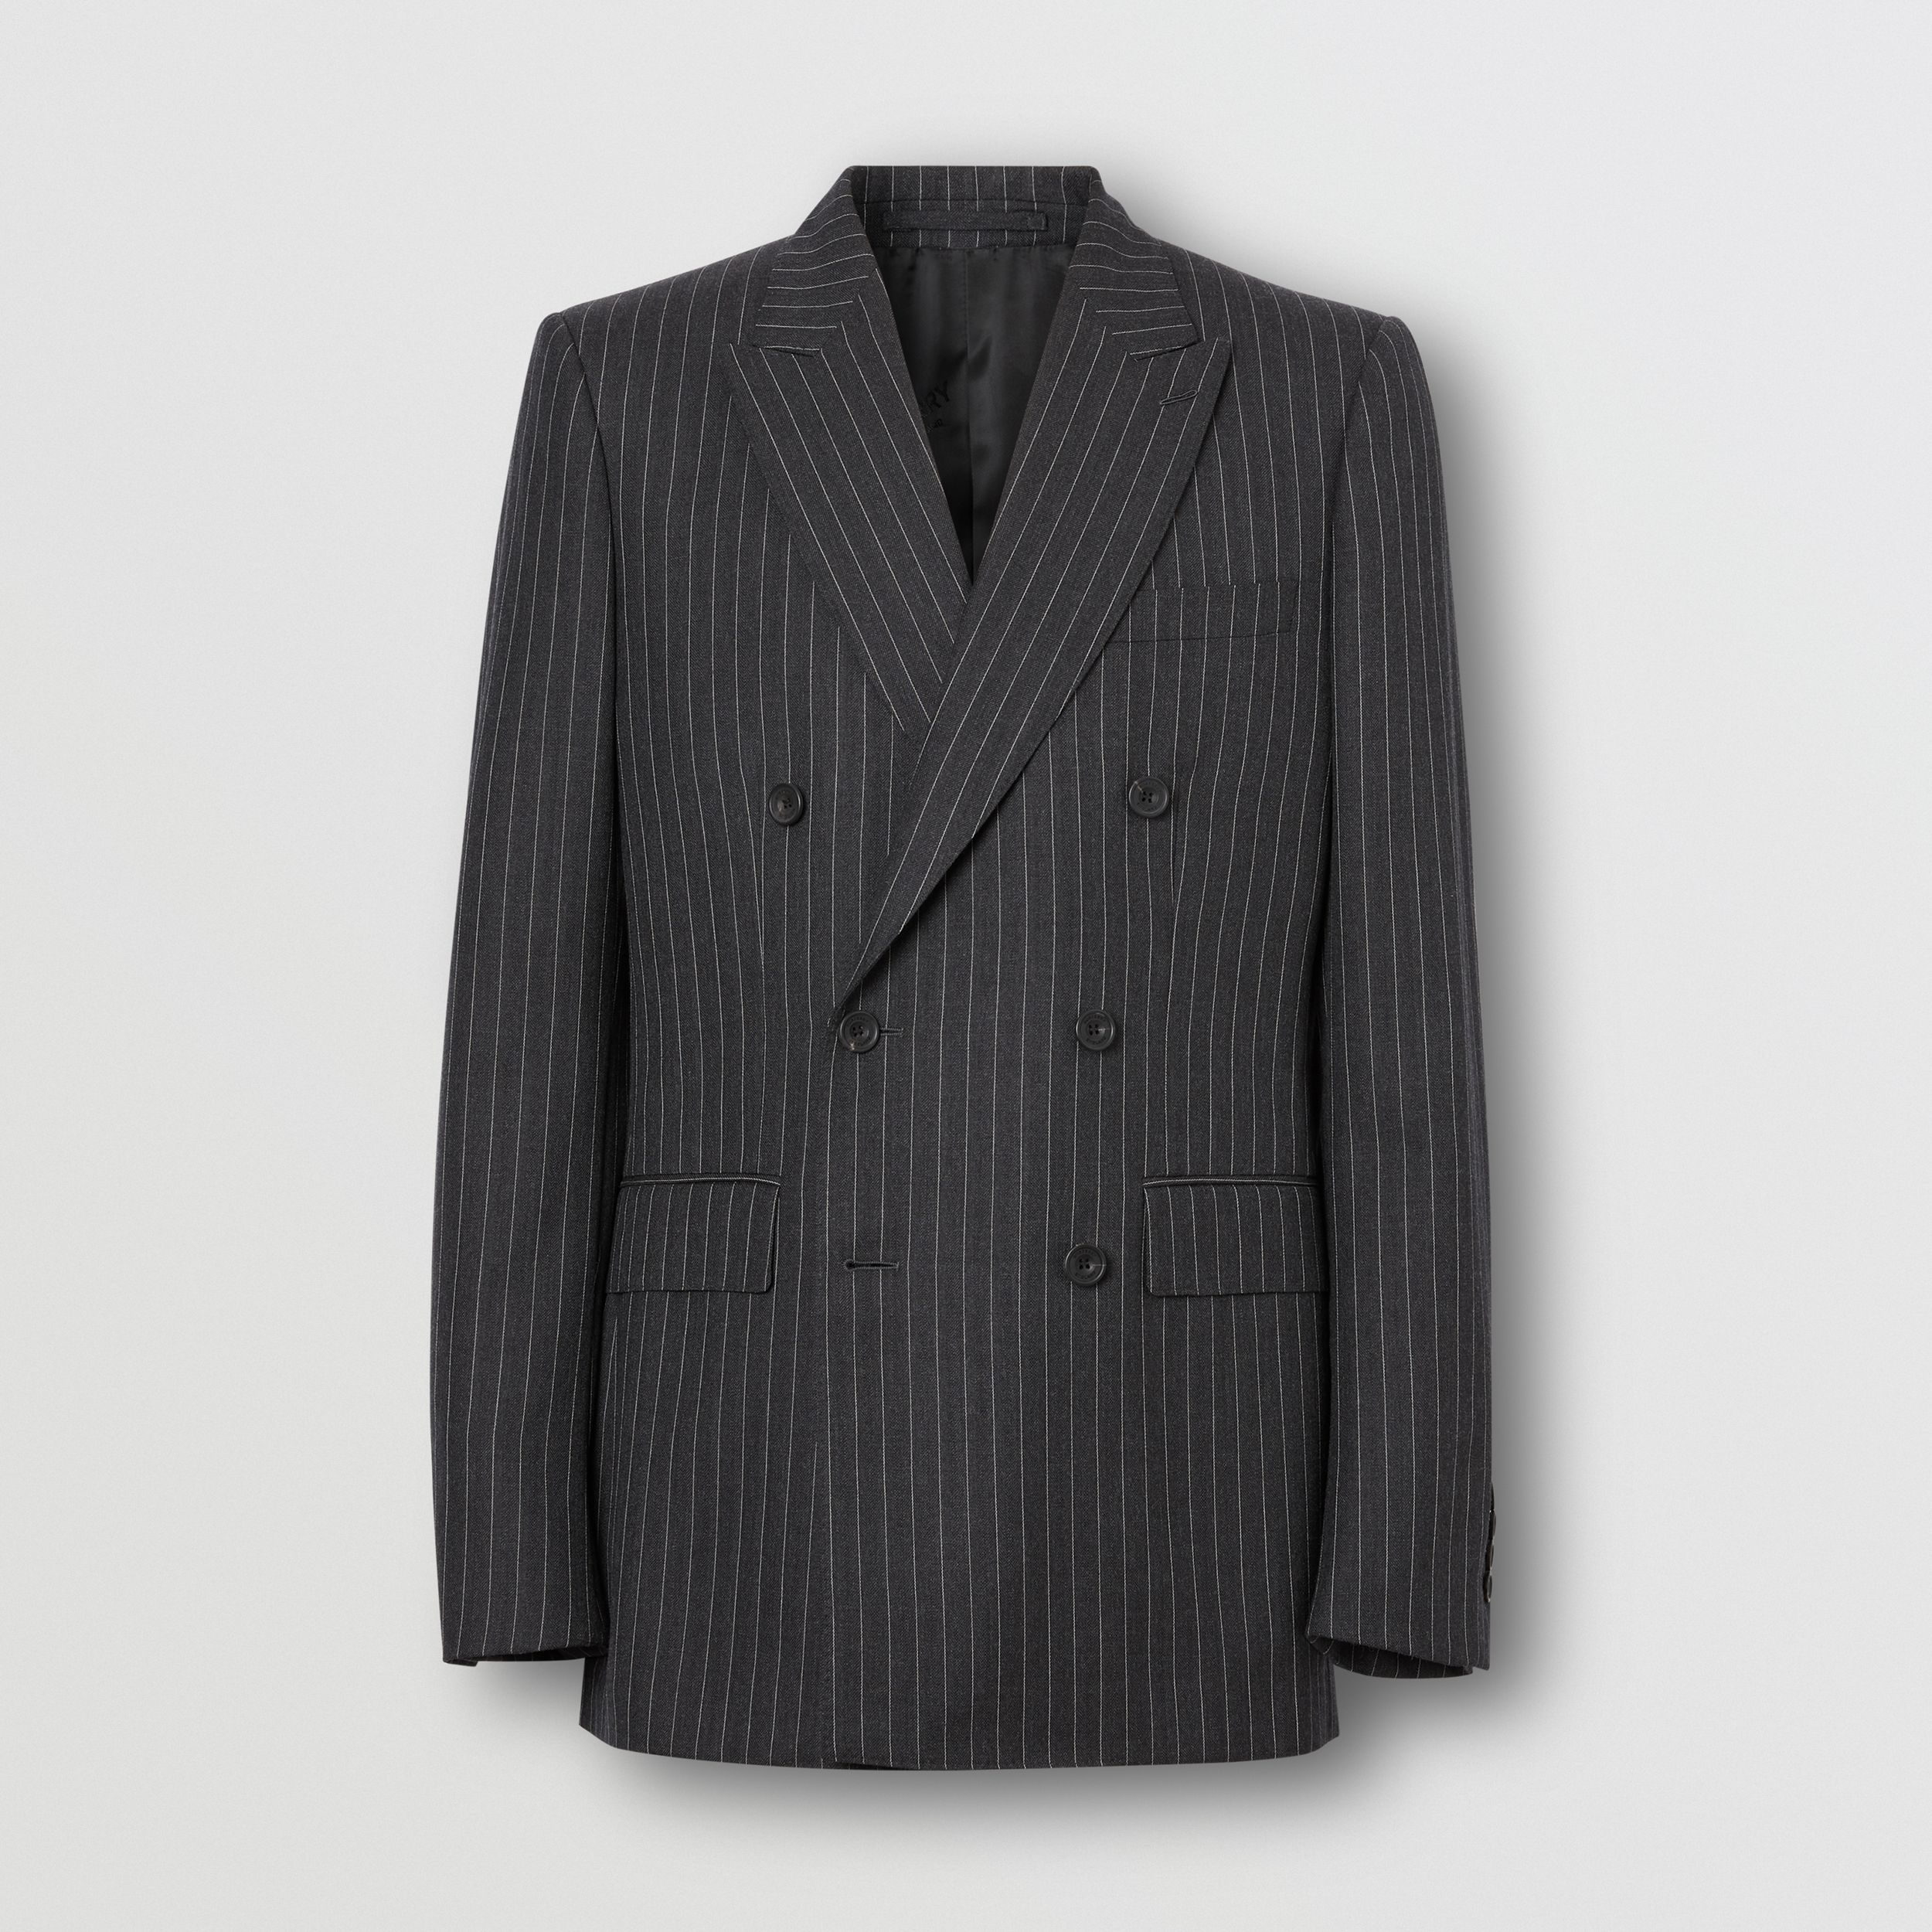 English Fit Pinstriped Wool Double-breasted Suit in Charcoal - Men | Burberry - 4